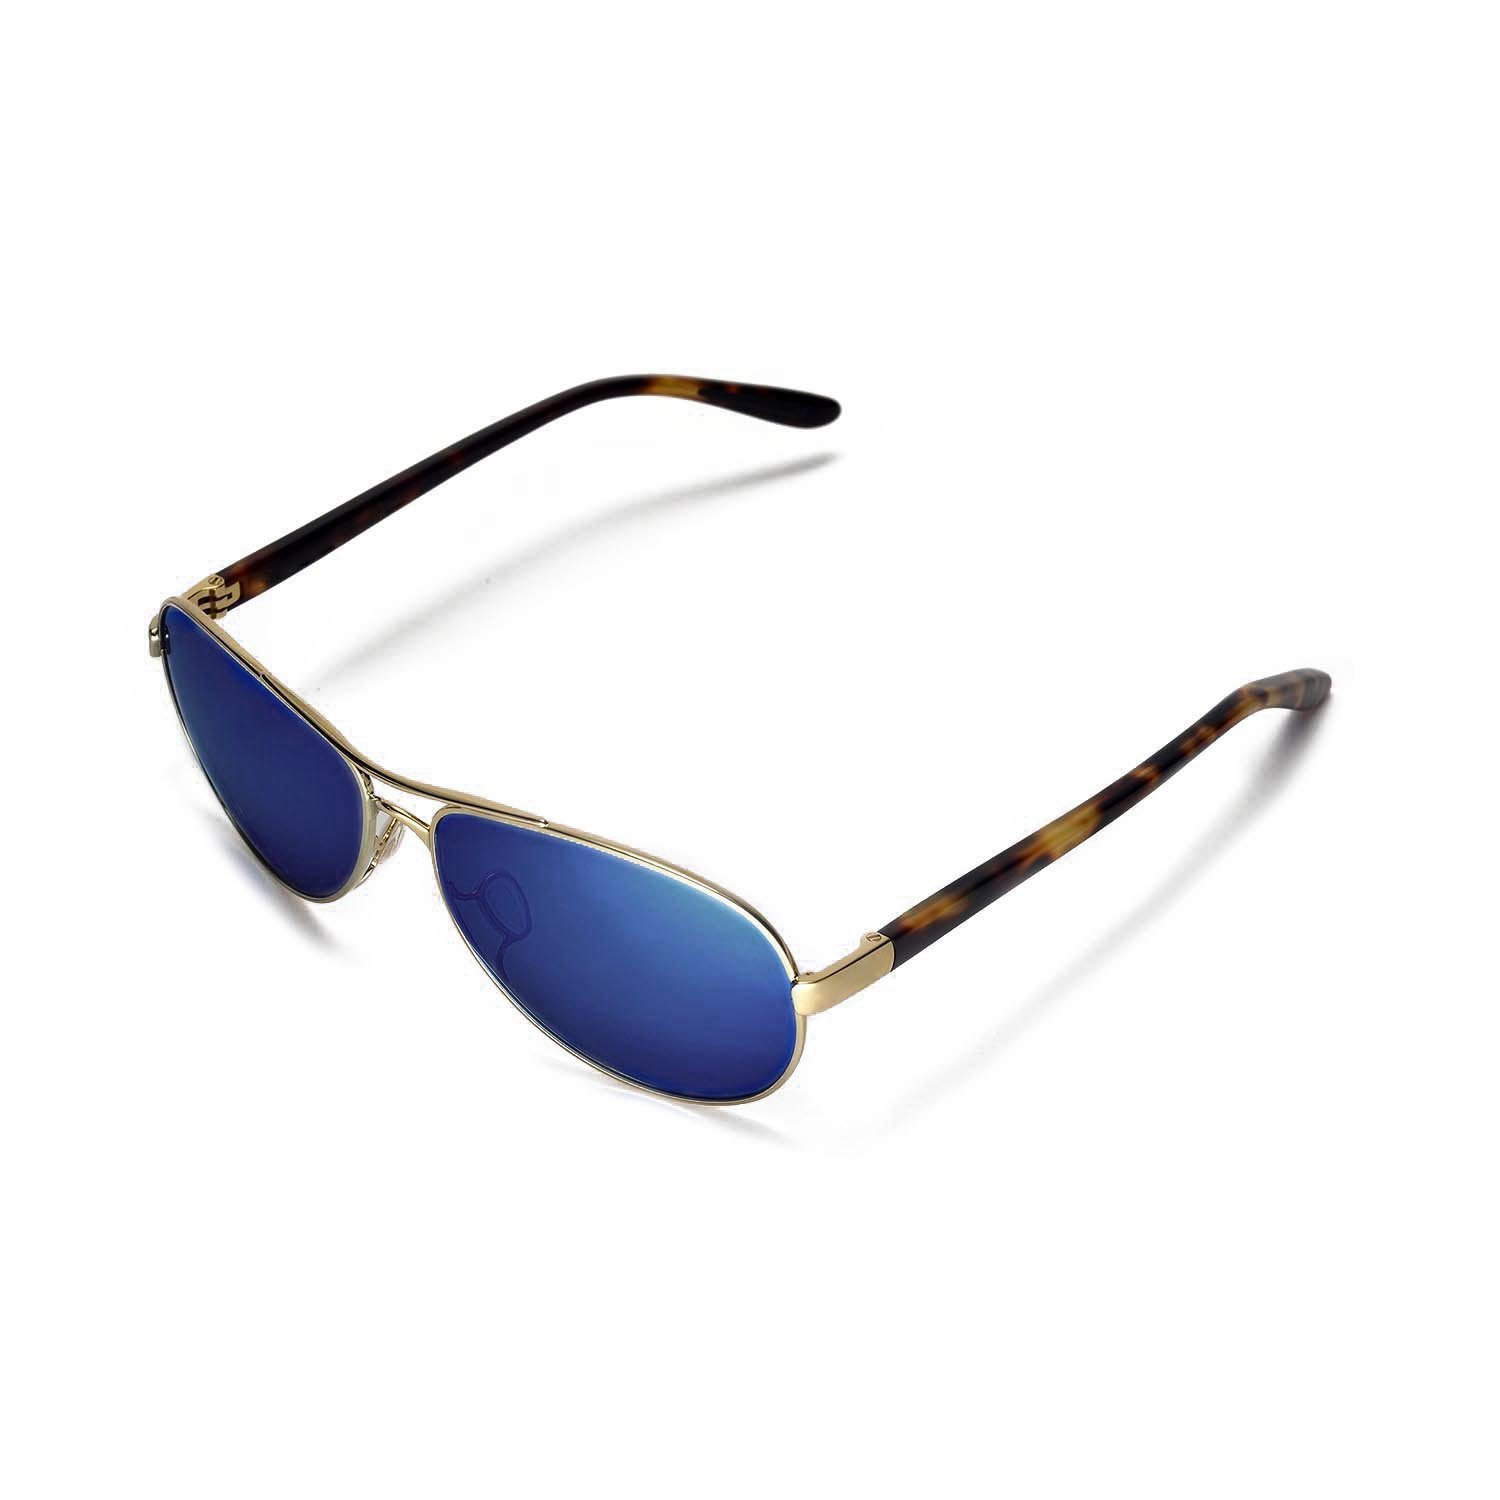 209136a1ef9 Walleva Replacement Lenses for Oakley Feedback Sunglasses - Multiple  Options Available (Ice Blue Coated - Polarized)